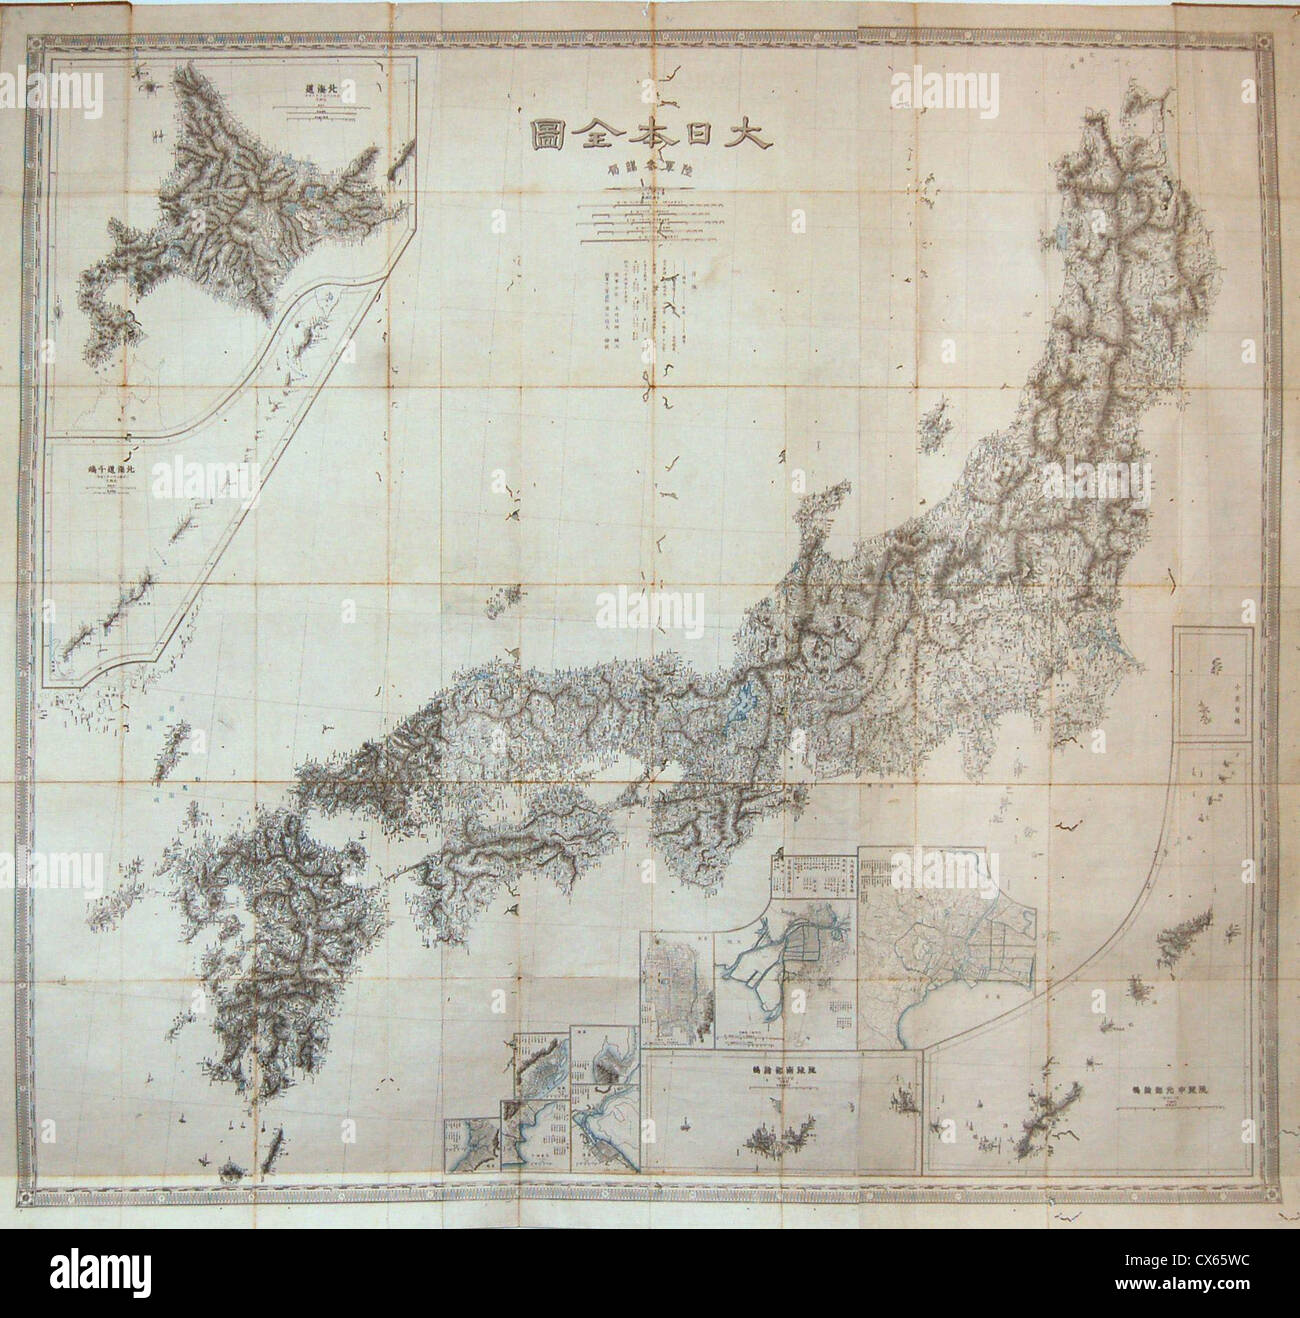 1878 Meiji 11 Ino Tadataka Japanese Military Map of Japan - Stock Image